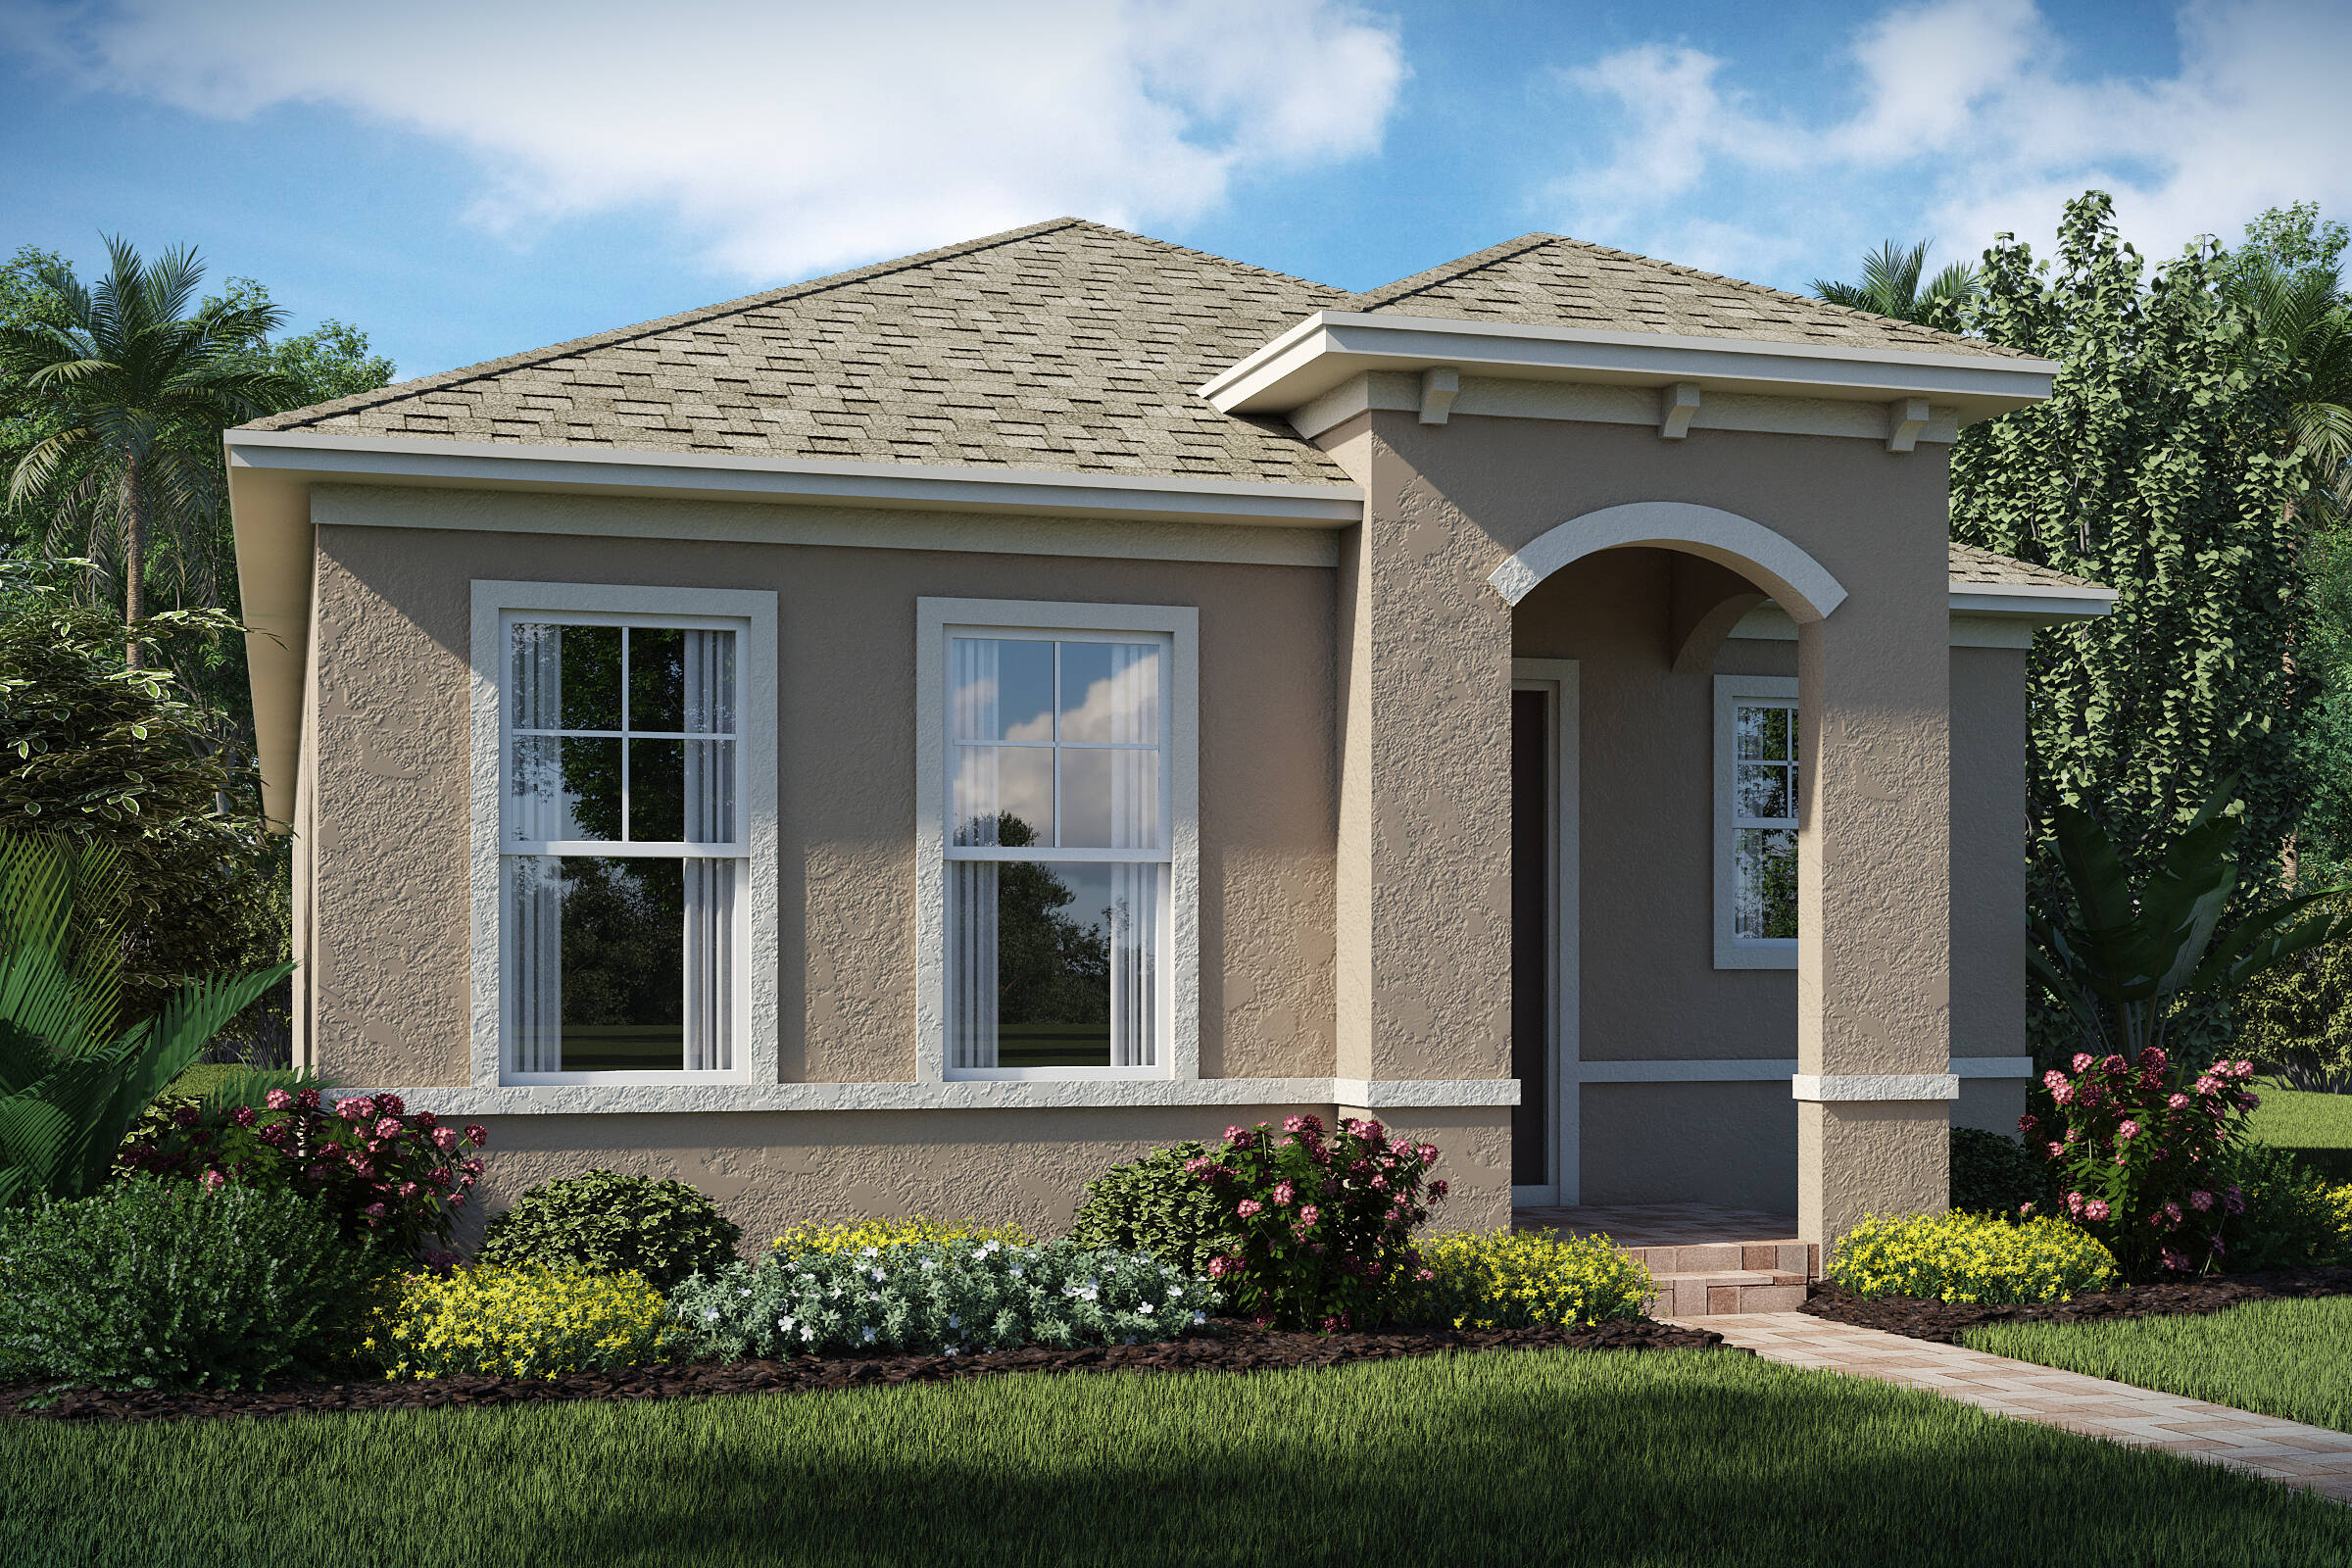 The Highlands At Summerlake Groves - New Homes In Winter Garden, Fl